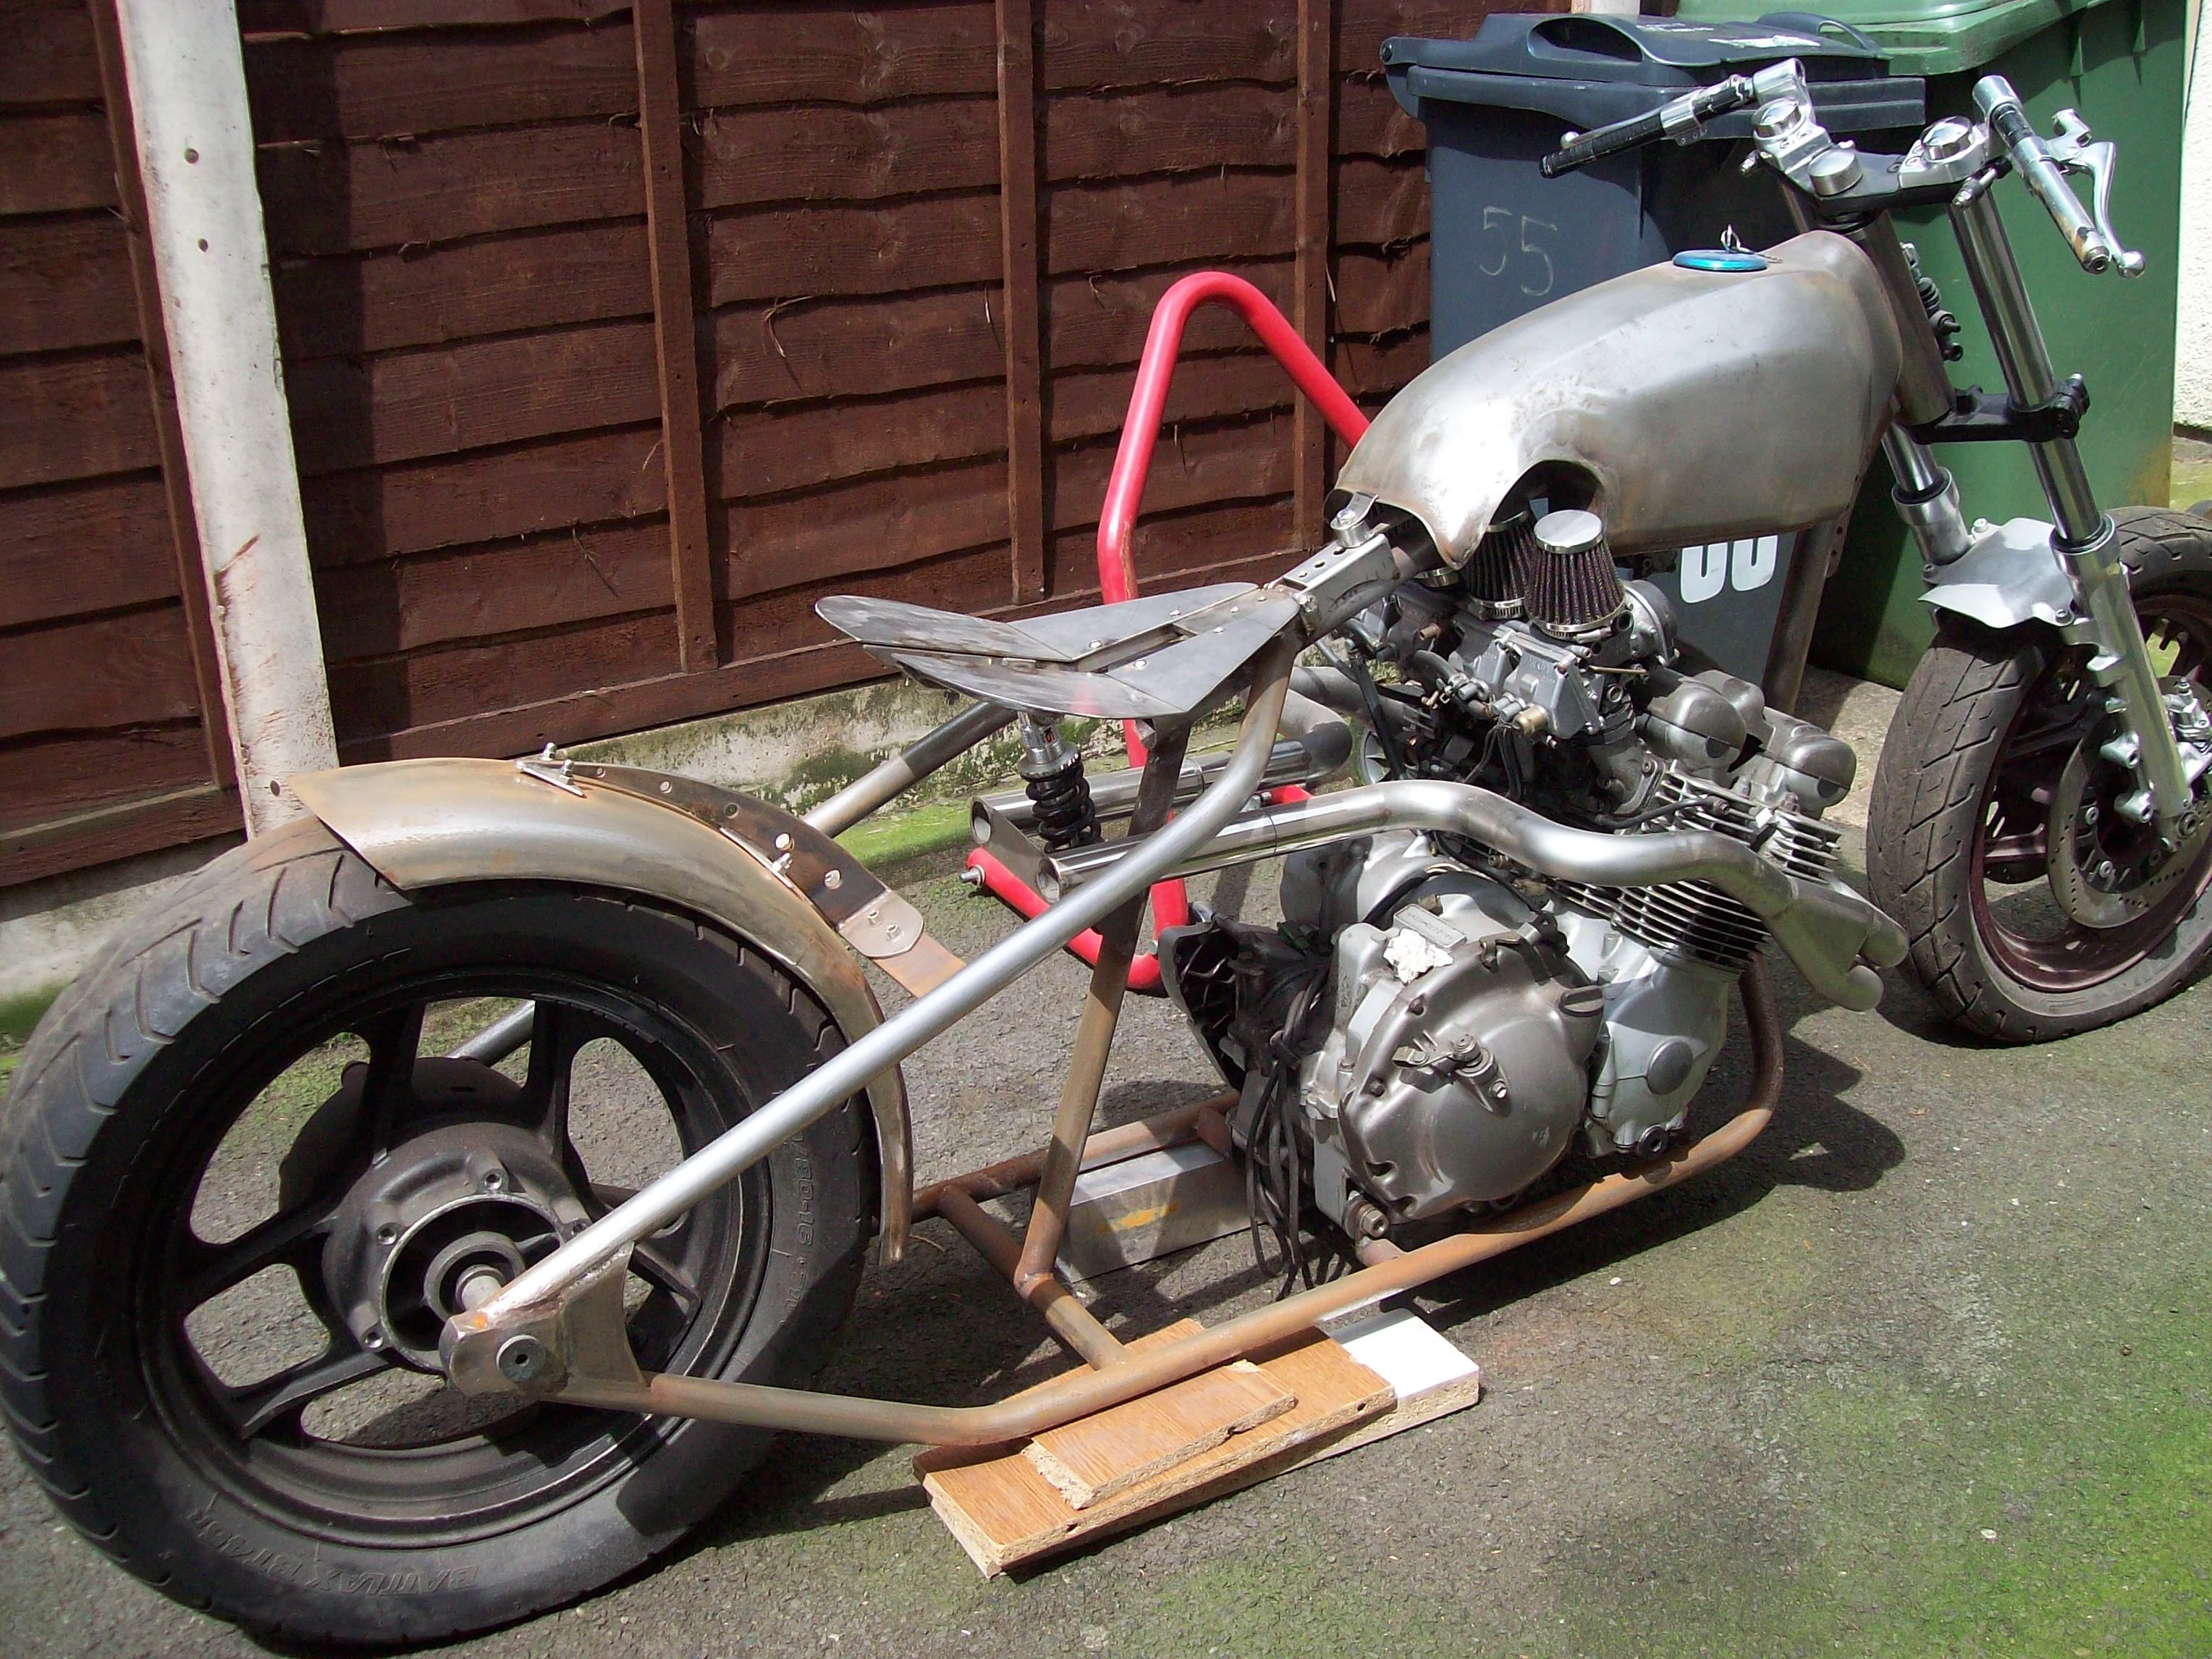 my bobber build. yam diversion 600 engine, kwaka gpz forks and